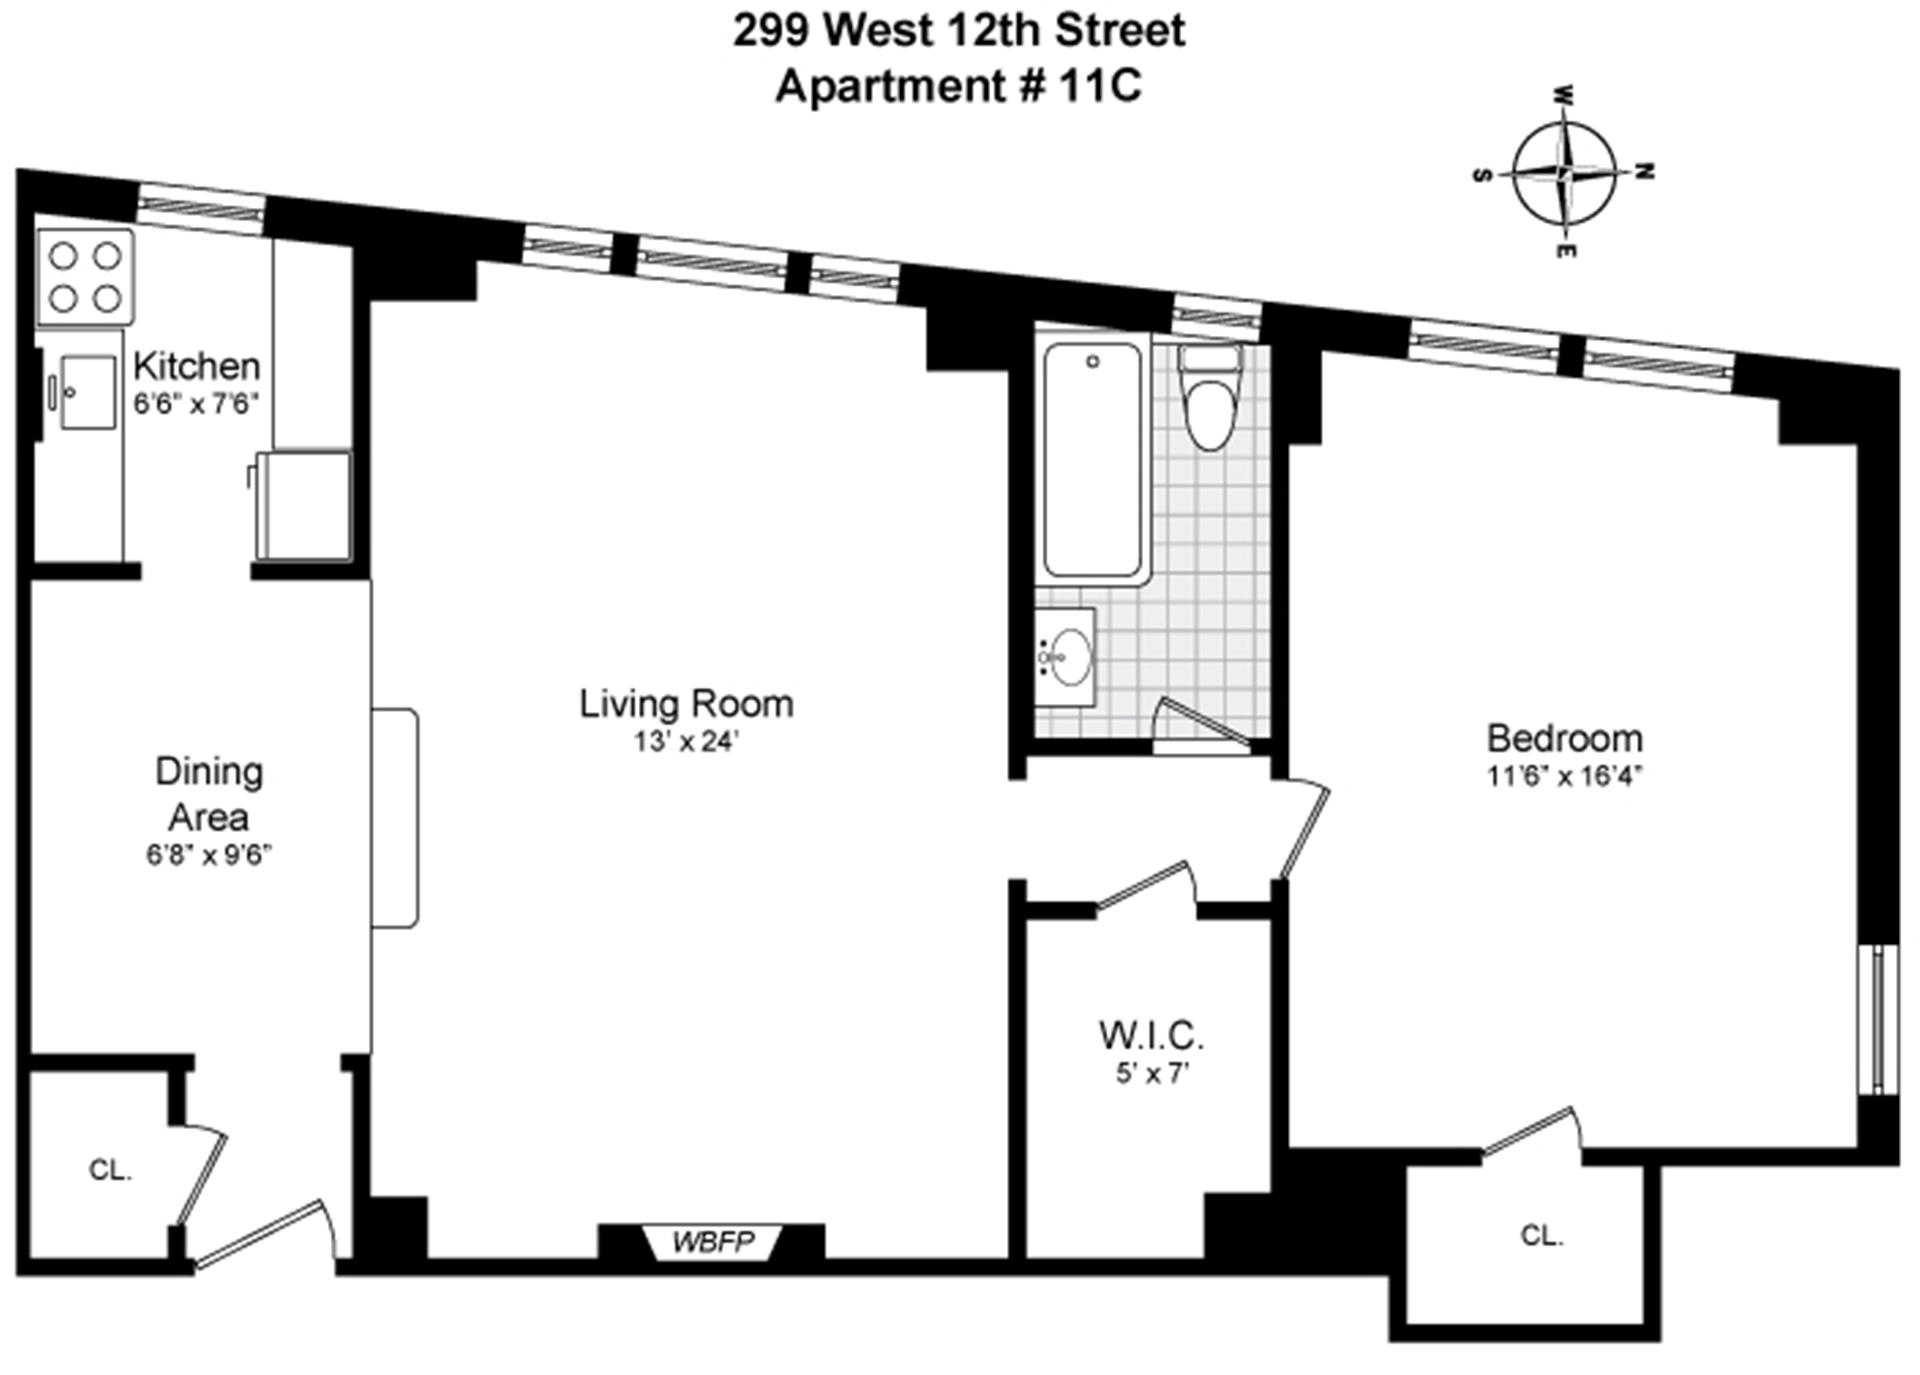 Floor plan of 299 W. 12 CORP., 299 West 12th St, 11C - West Village - Meatpacking District, New York